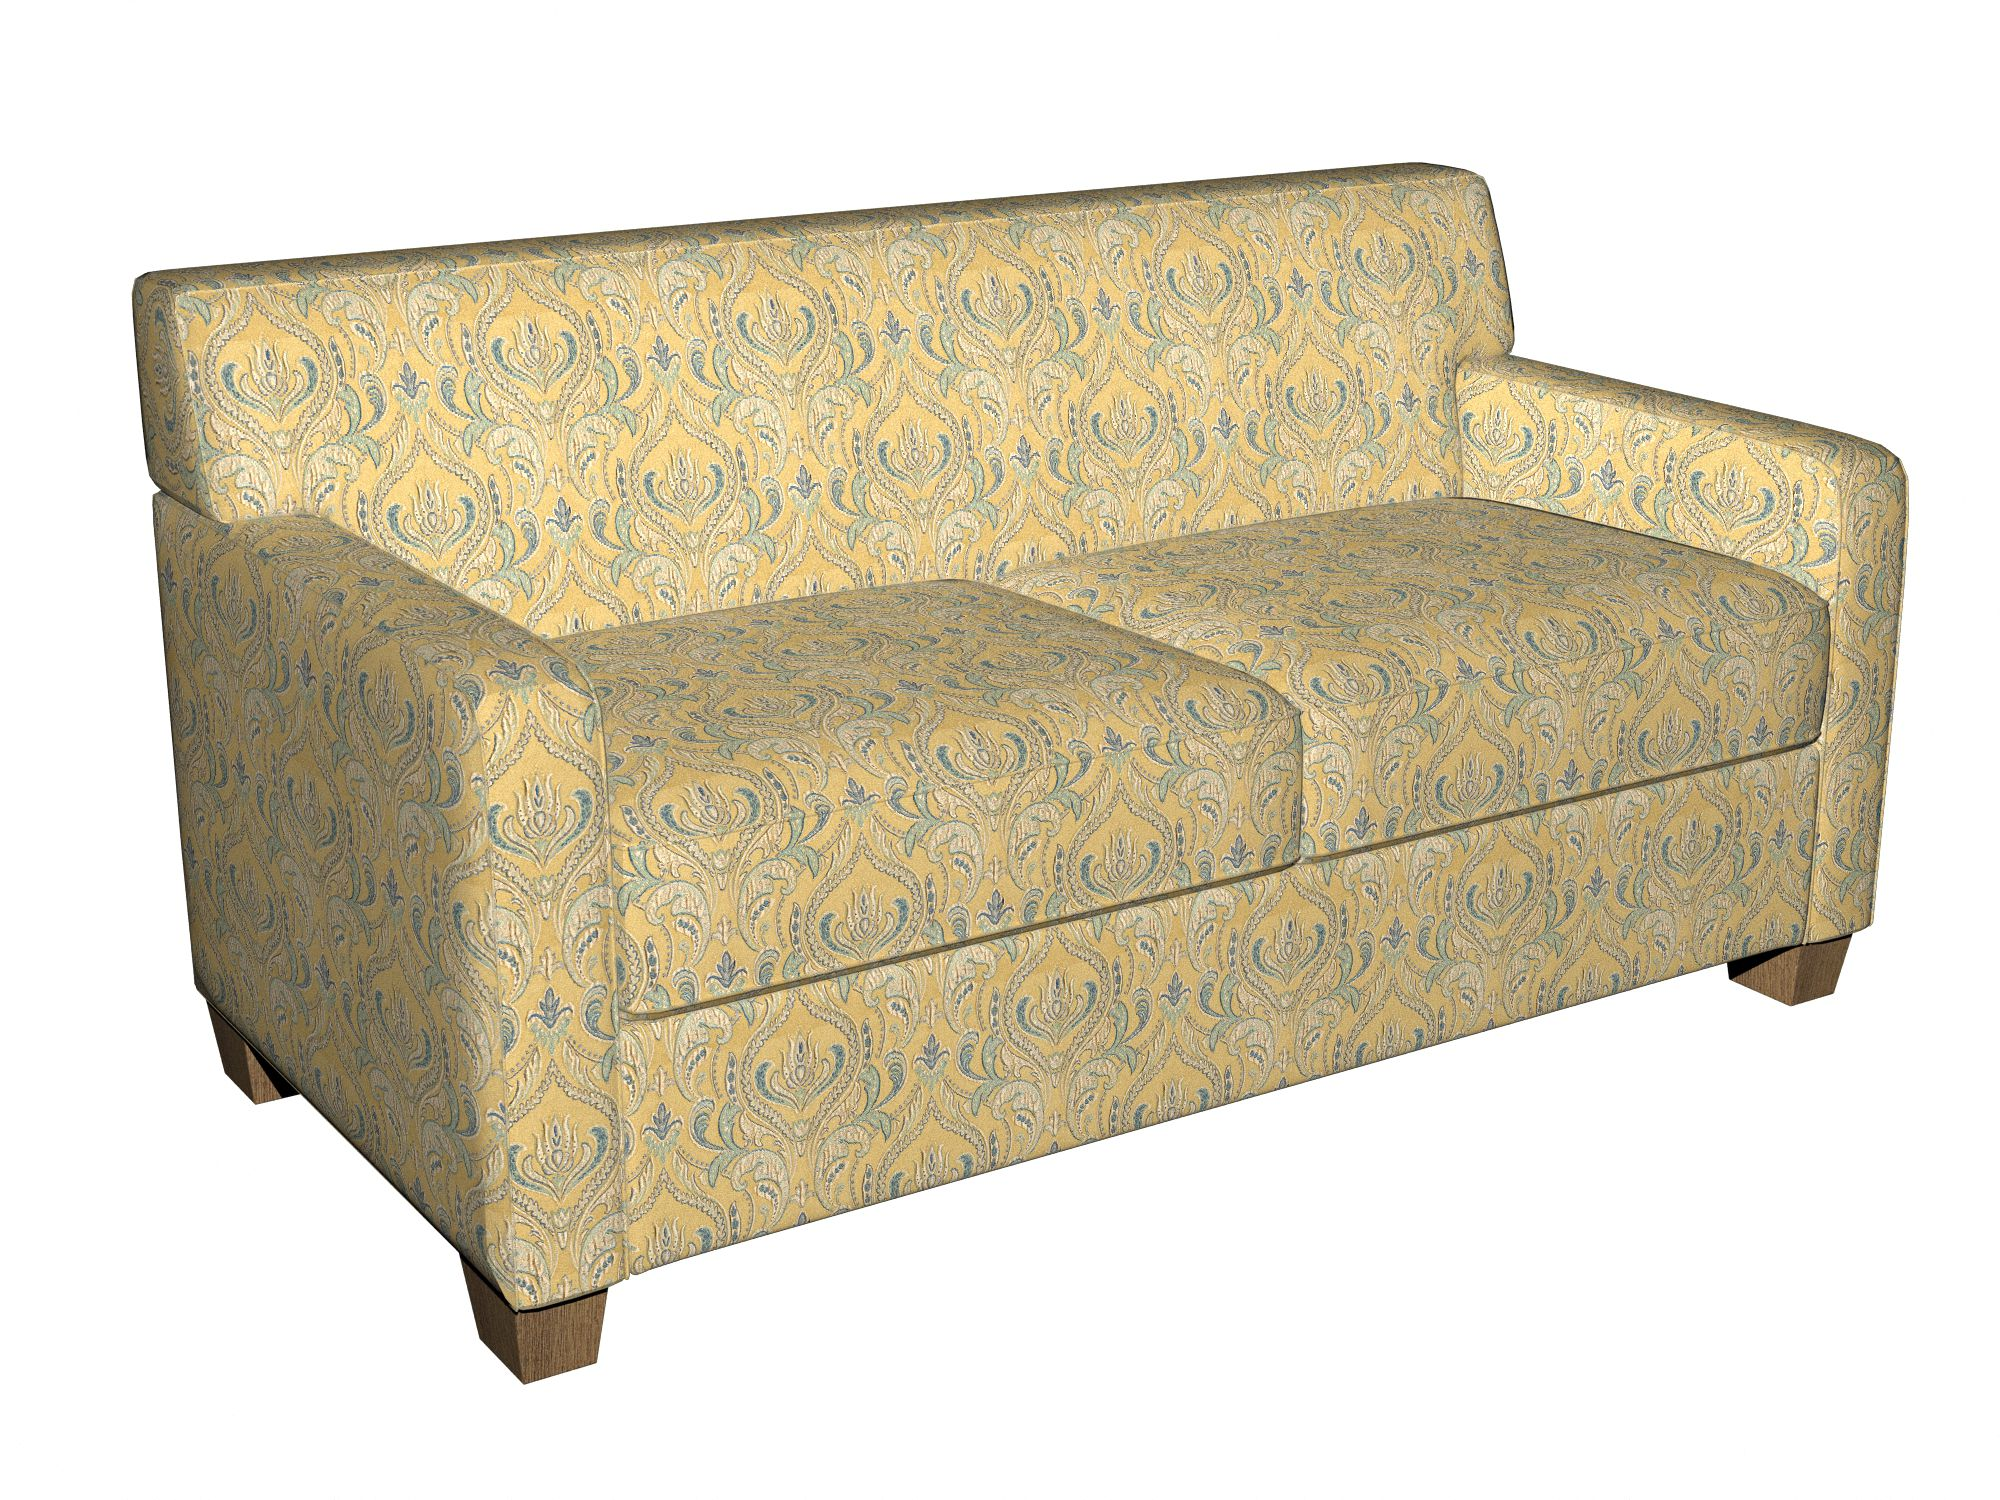 brocade sofa fabric sofascore tennis mobile b0750a gold blue and teal large scale leaves damask